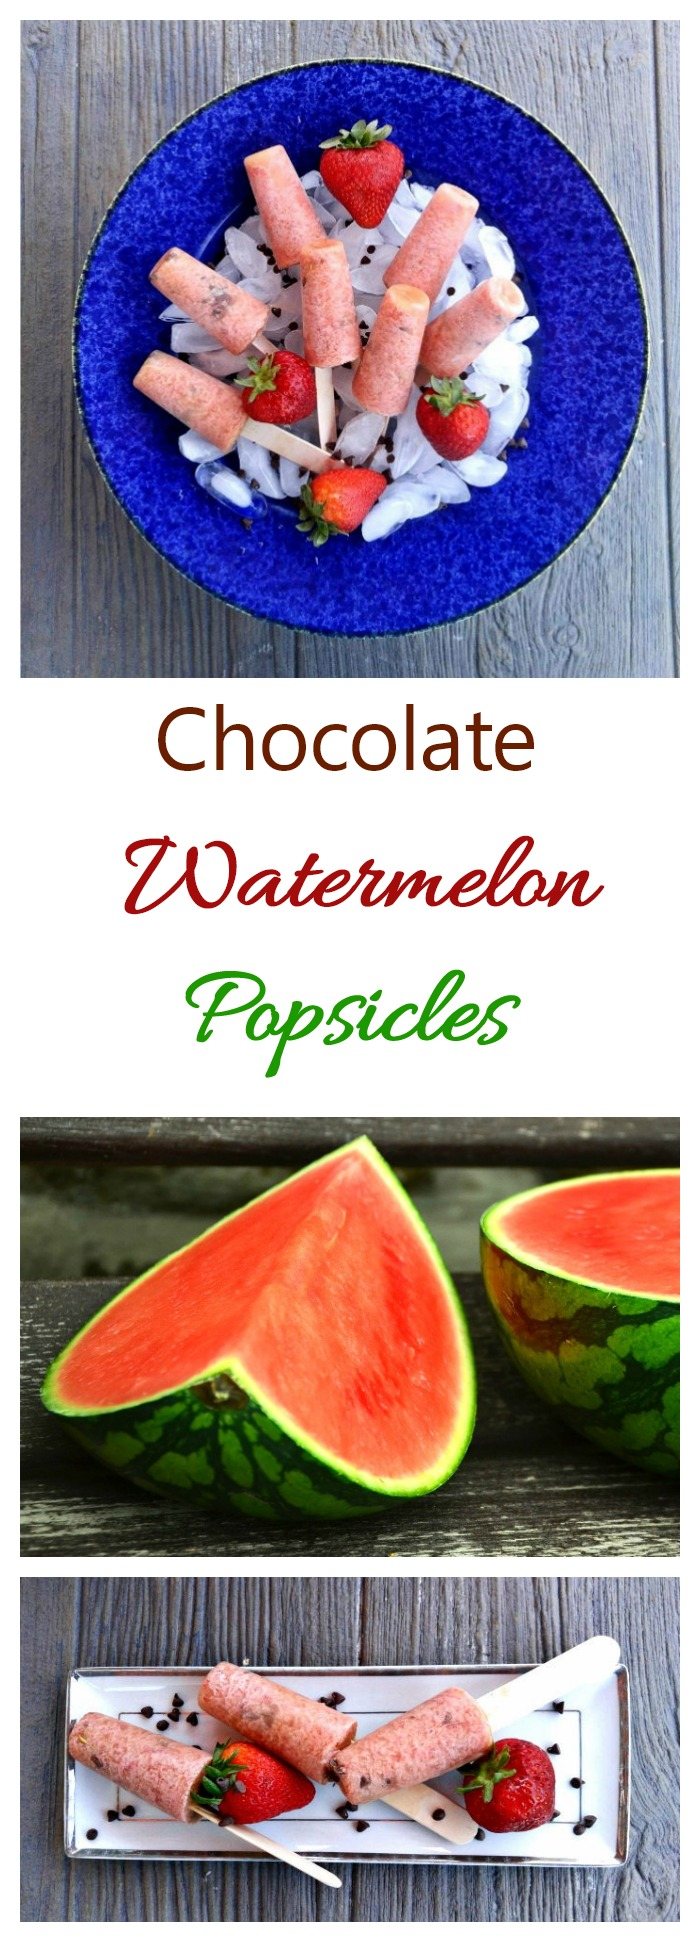 These Chocolate Watermelon Popsicles are sweet and refreshing and have a light crunch from some chocolate chips.